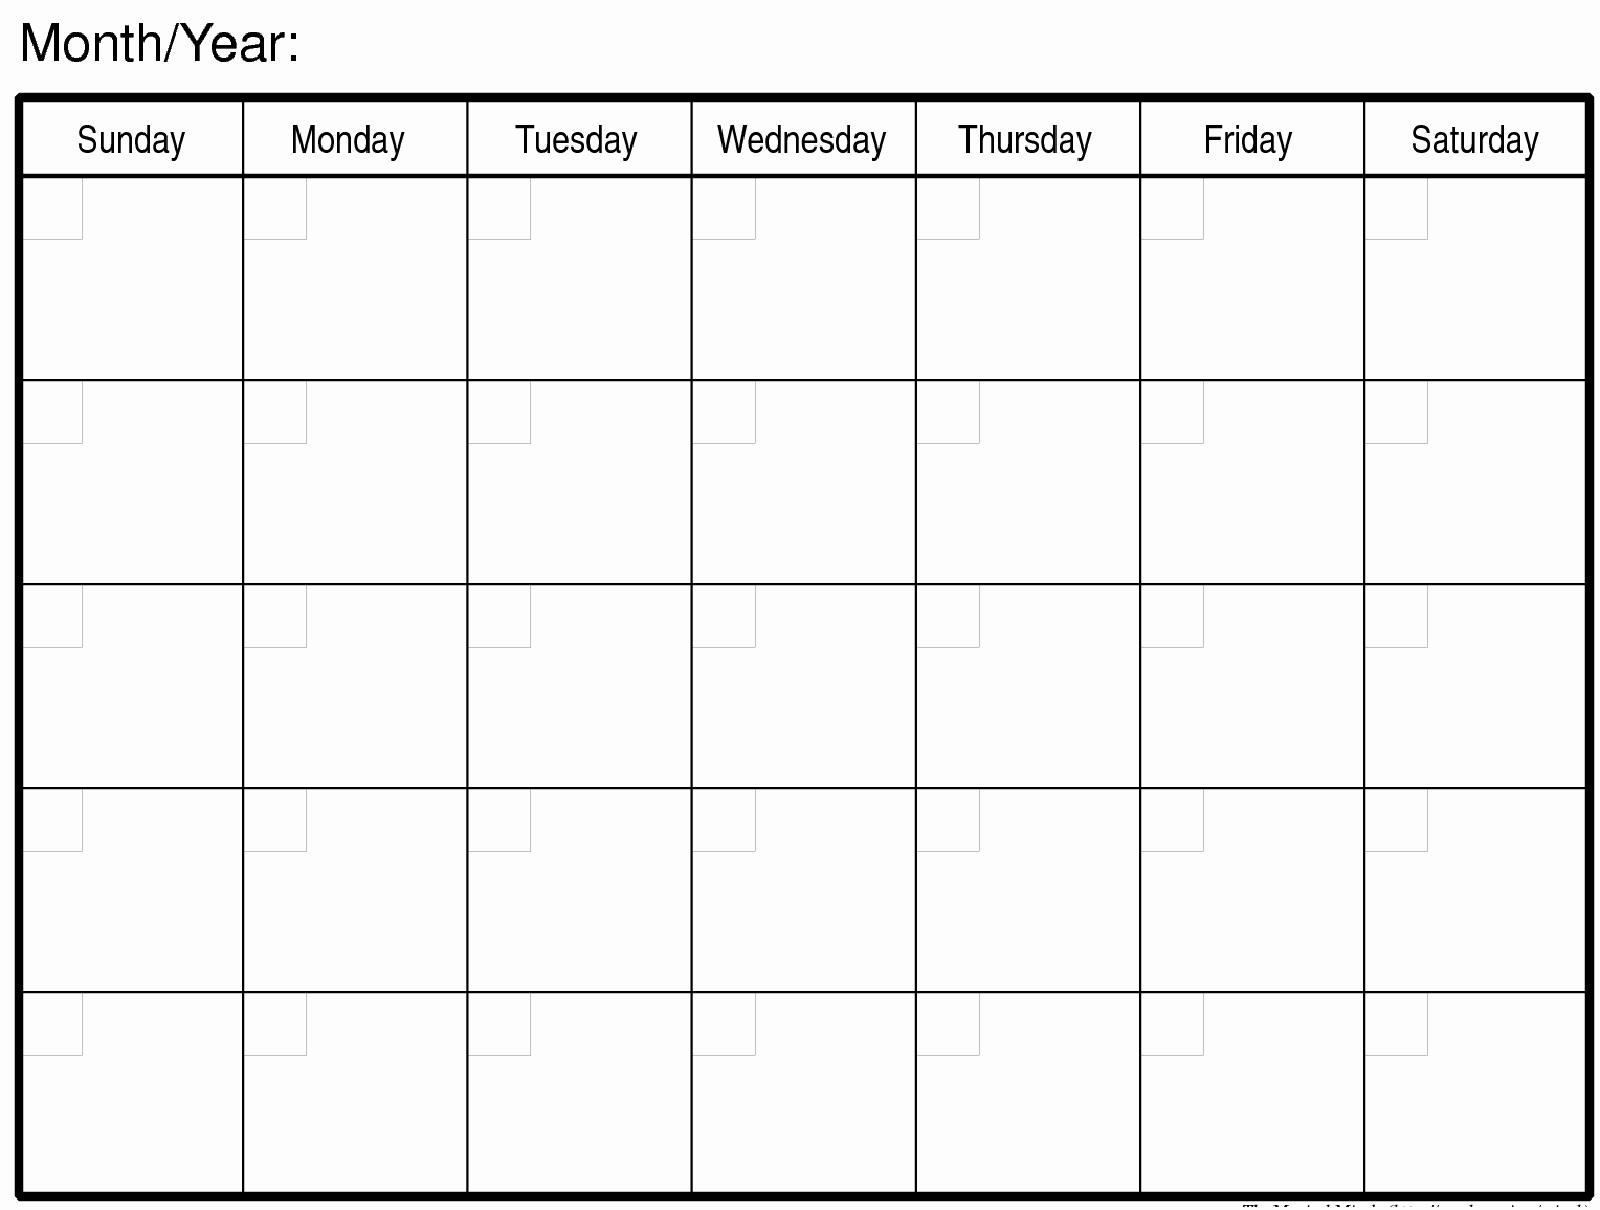 Blank Monthly Calendars To Print Free Calendar 2018-Printable Blank Monthly Calendar Template